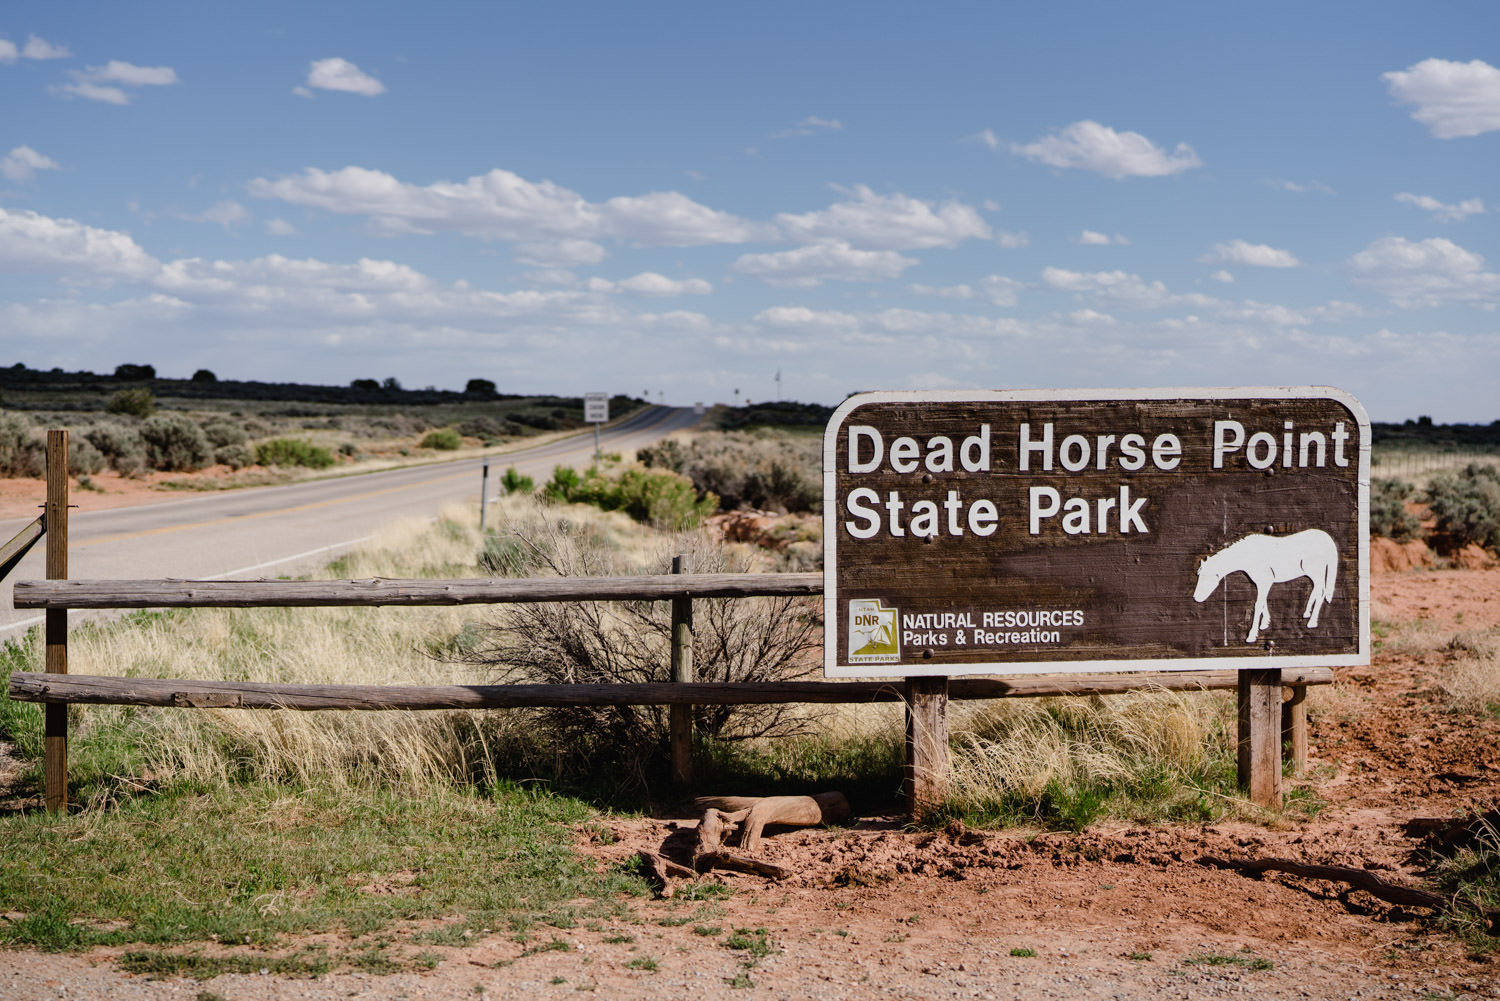 Dead Horse Point elopement state park sign photo